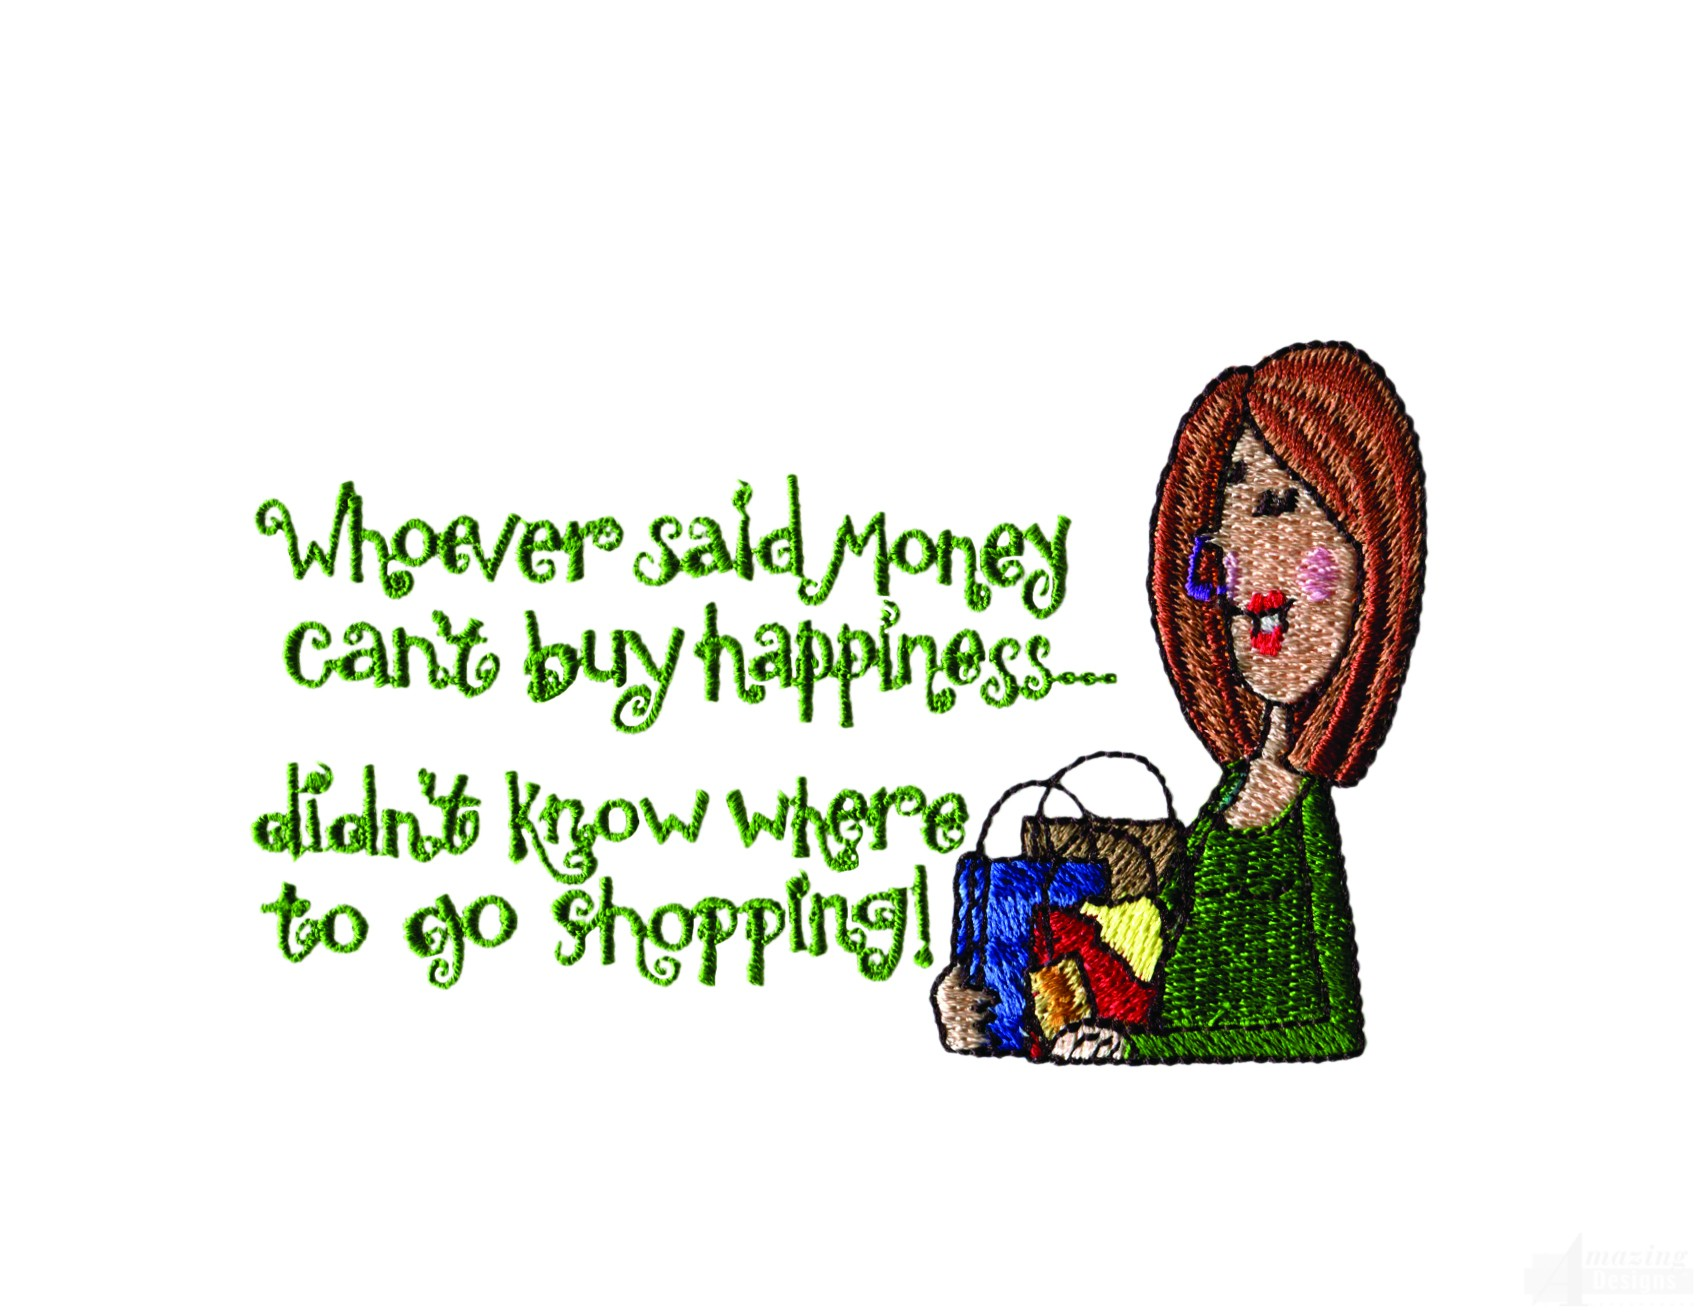 Essay money cannot buy happiness